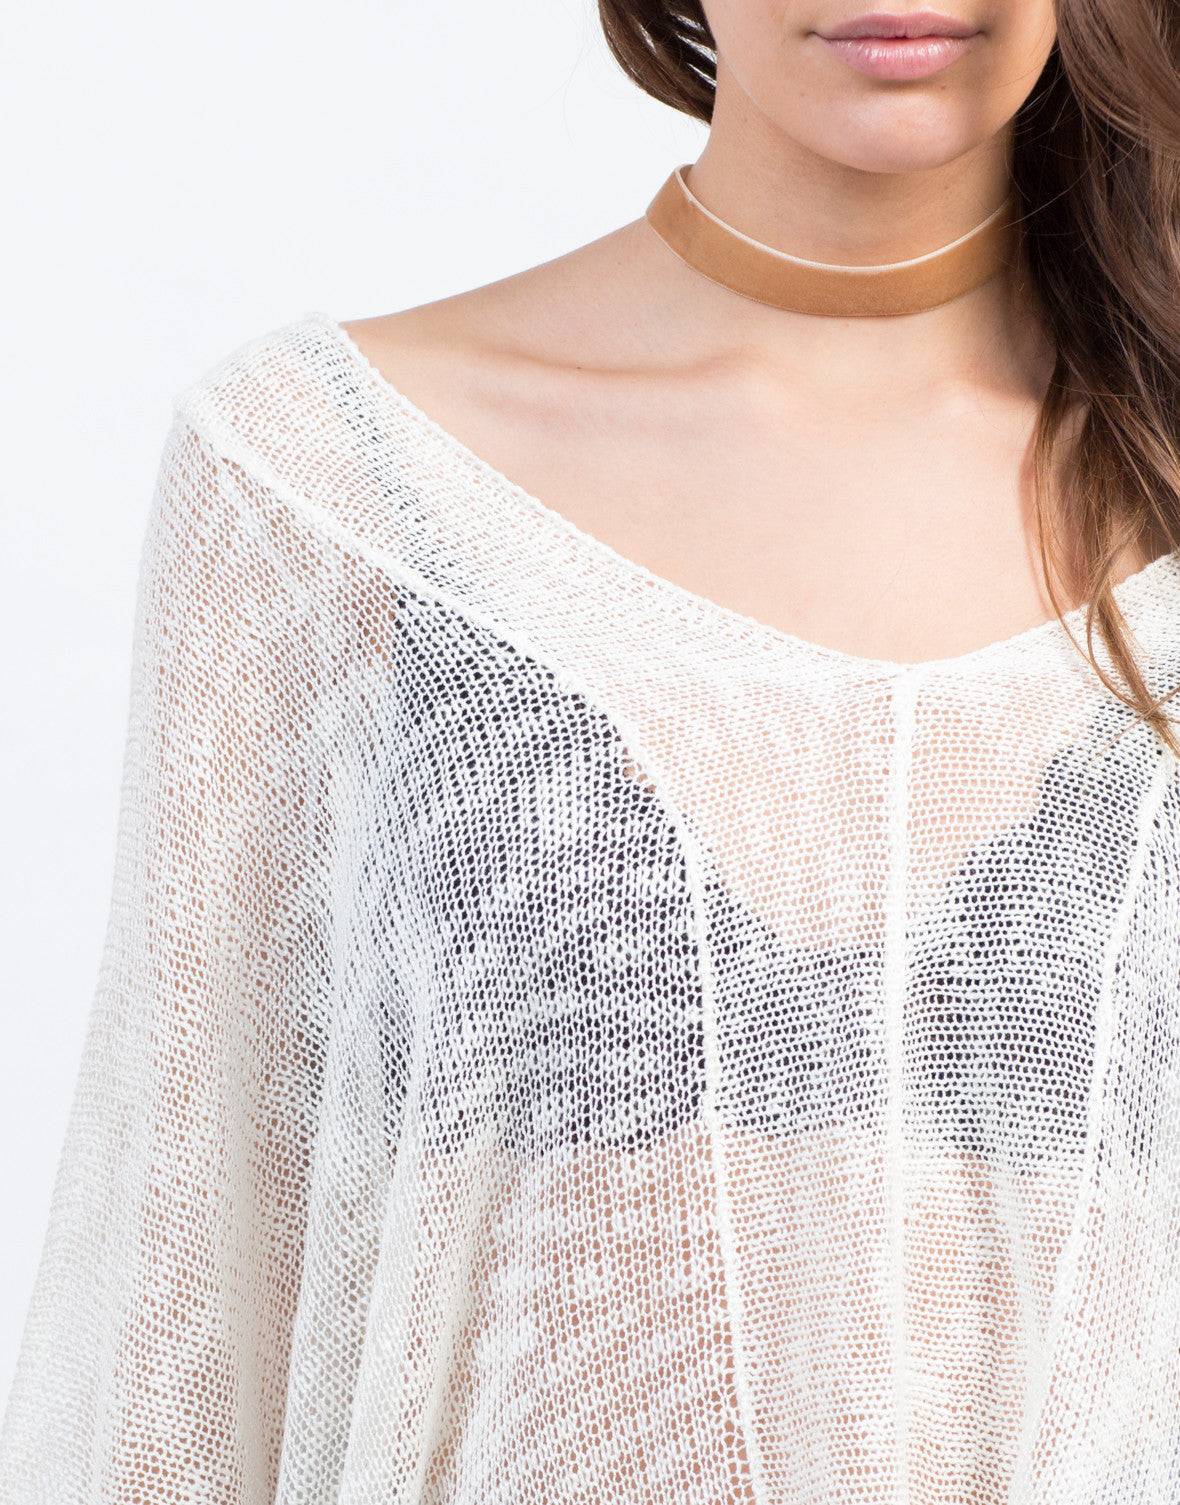 Detail of Sheer Knit Poncho Top